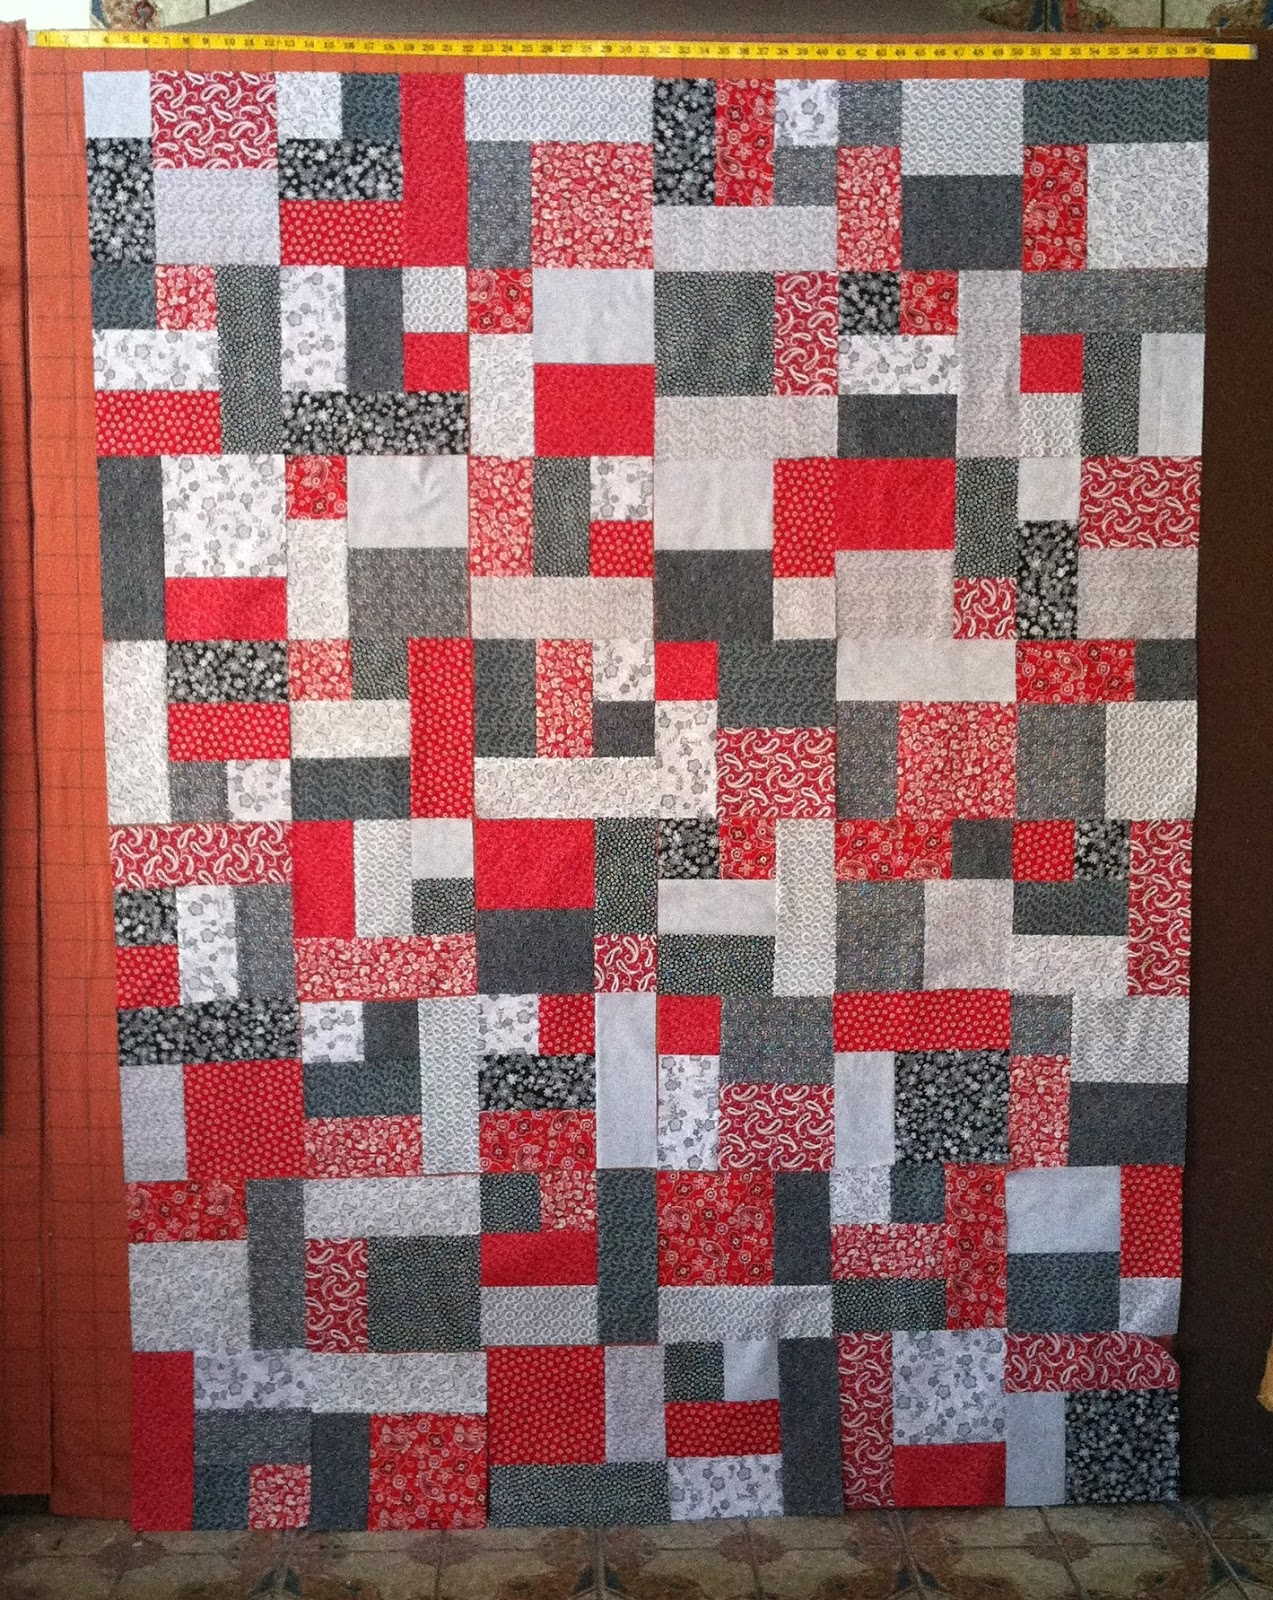 Red, White and Black Quilt, Yellow Brick Road Quilt